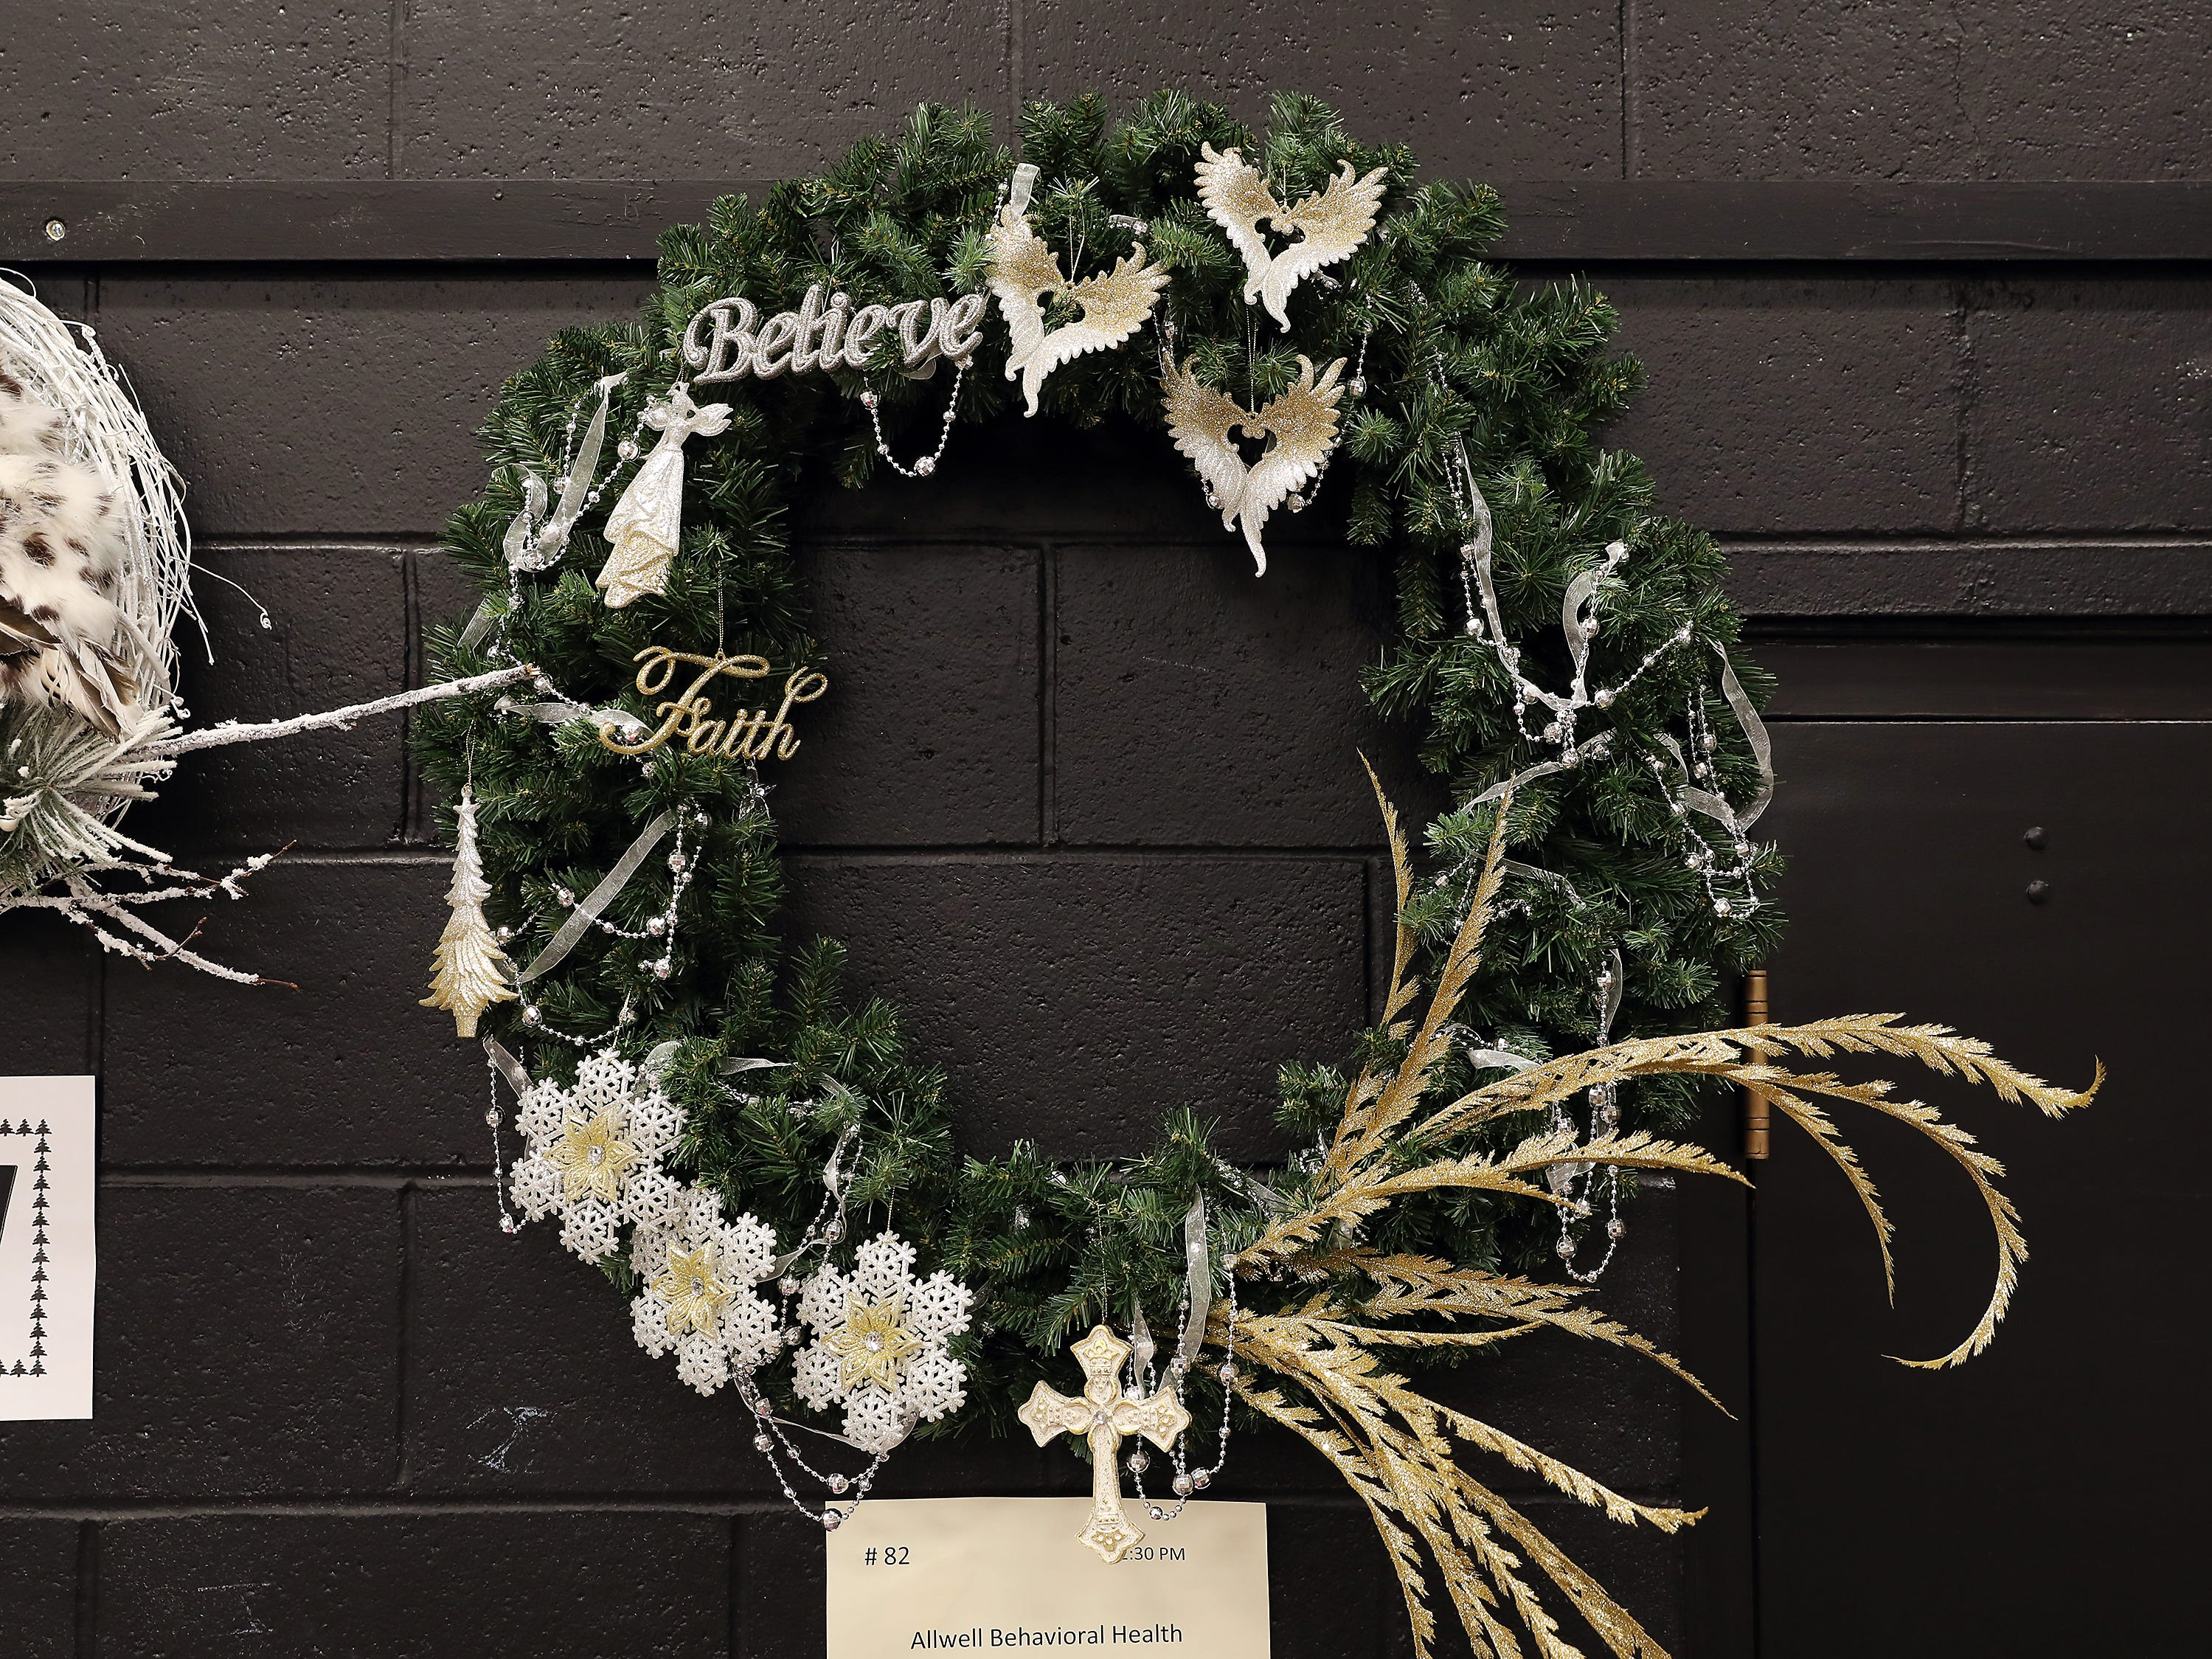 "82	12:30 PM	Allwell Behavioral Health Services	Wreath	Believe	36"" wreath with silver and gold mix ornaments, angel, angel wings and cross.		$50 gift card to HoneyBaked Ham."